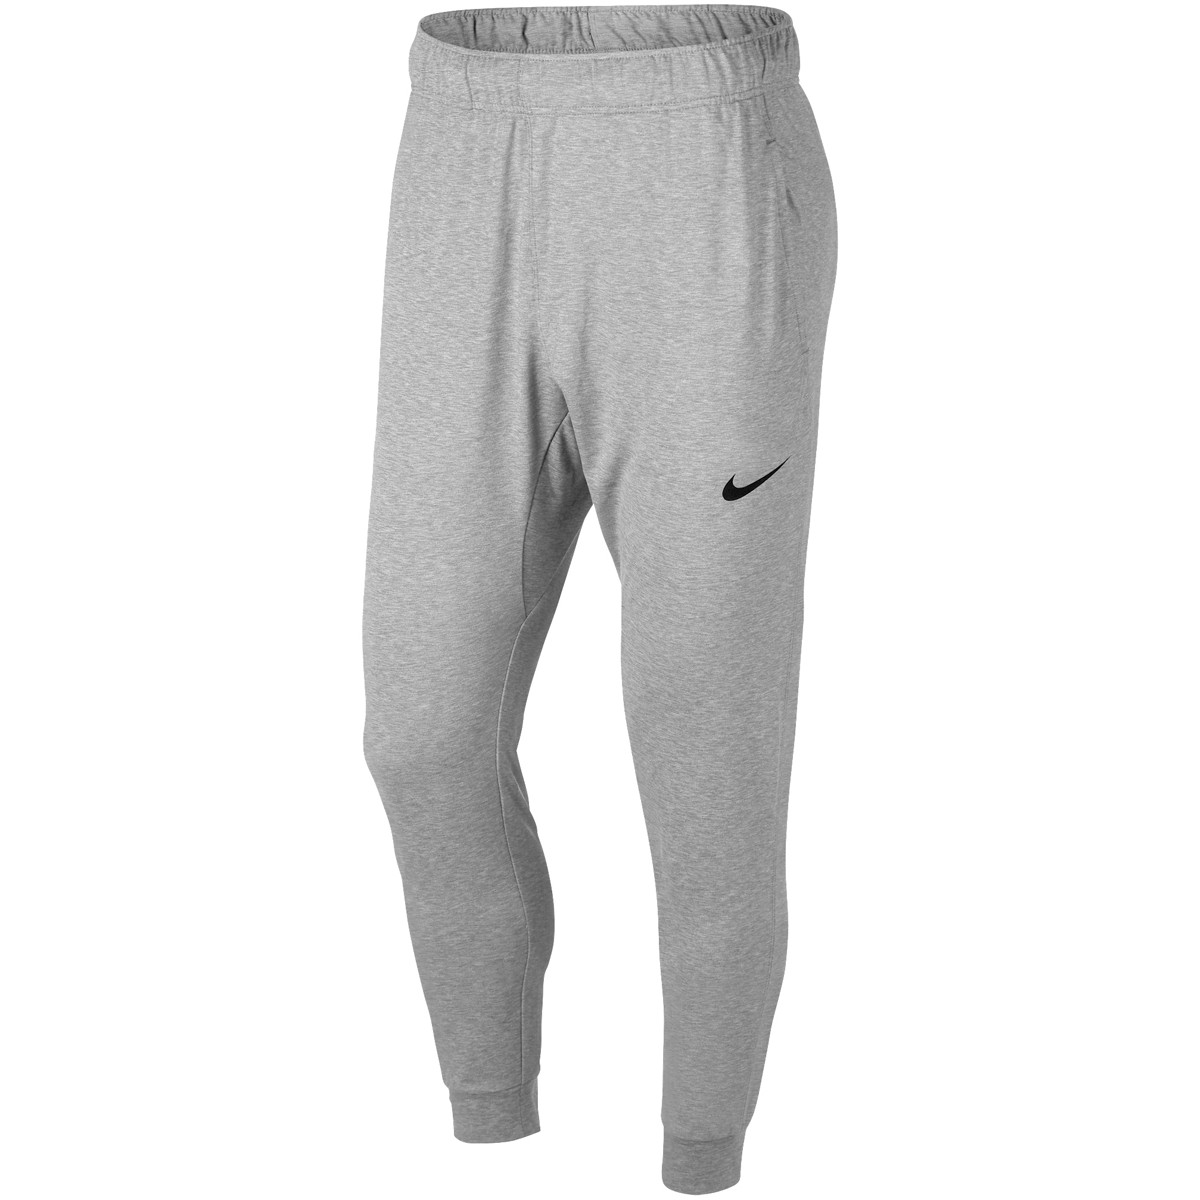 Condición previa promoción Cariñoso  NIKE DRI-FIT PANTS - NIKE - Men's - Clothing | Tennispro